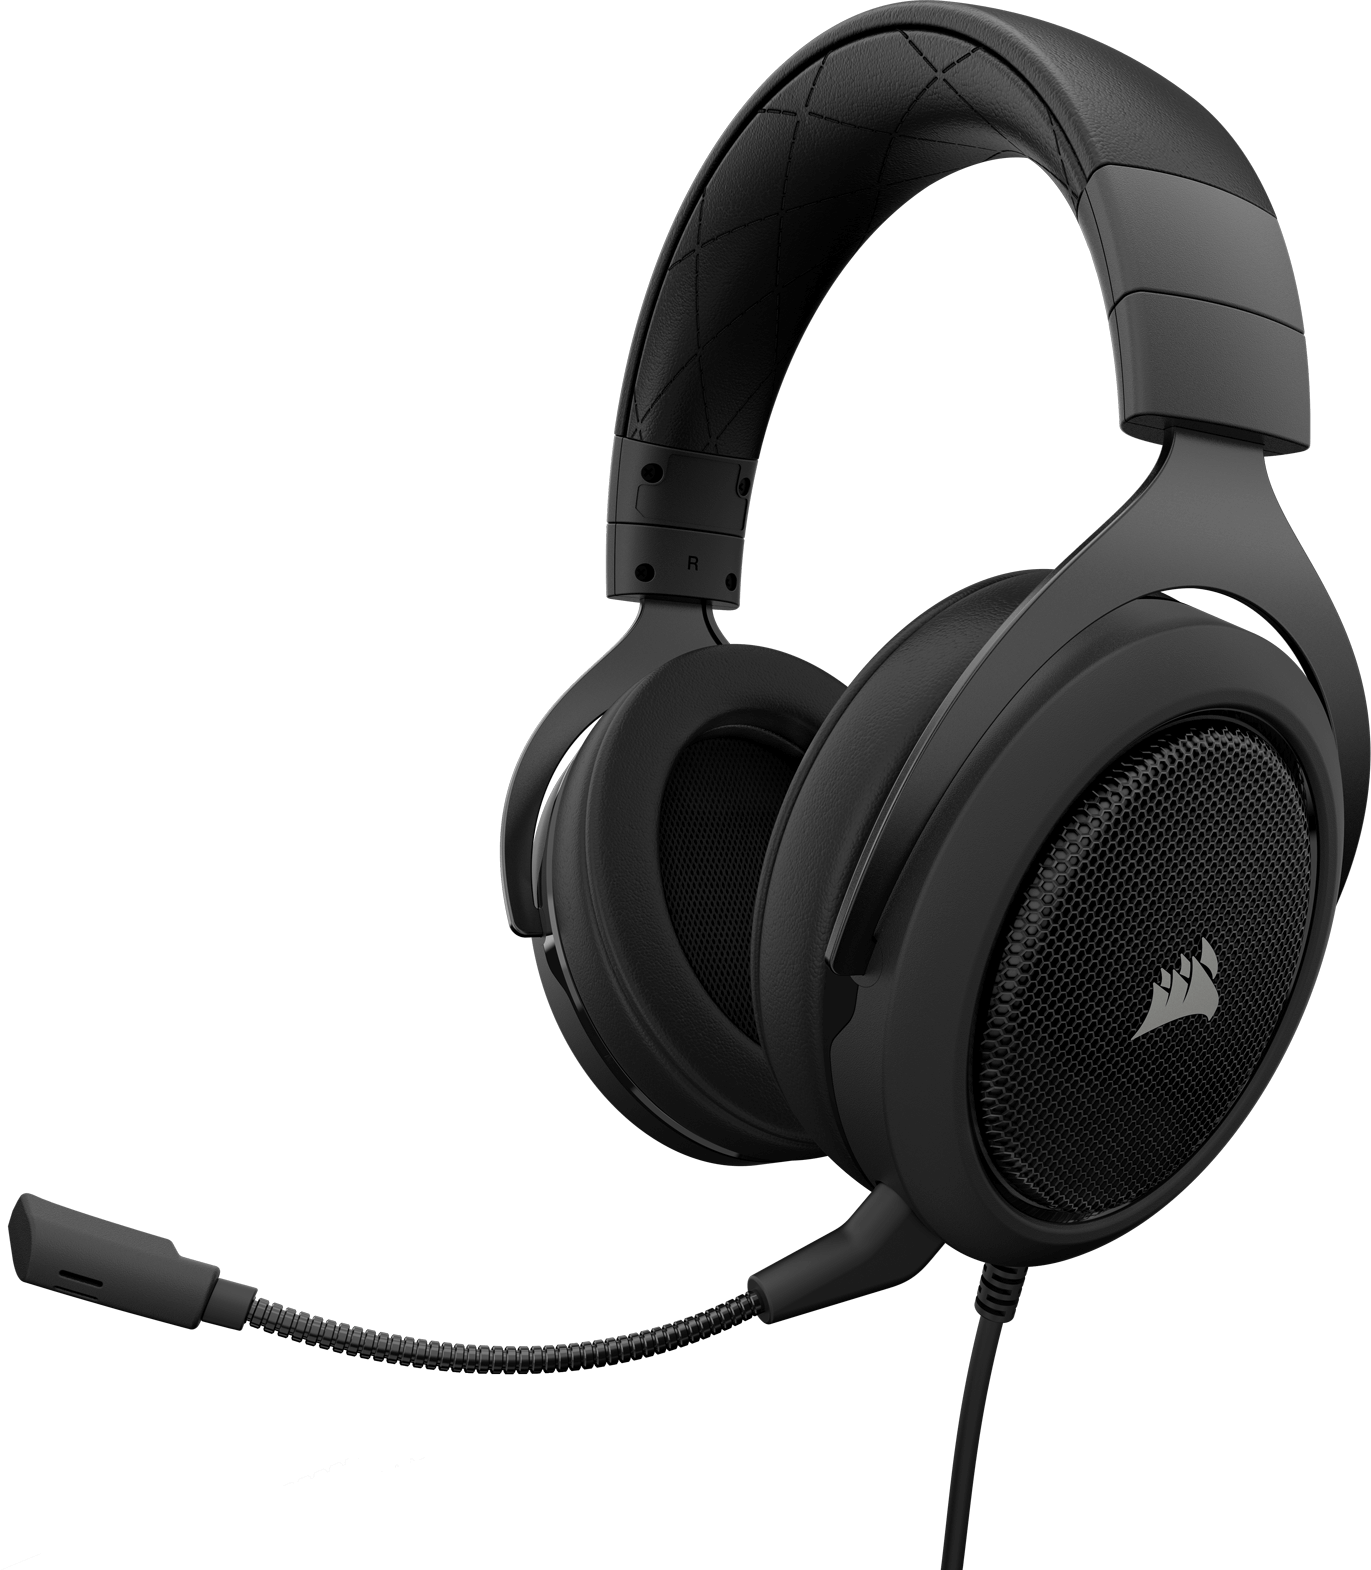 HS60 SURROUND Gaming Headset — Carbon on